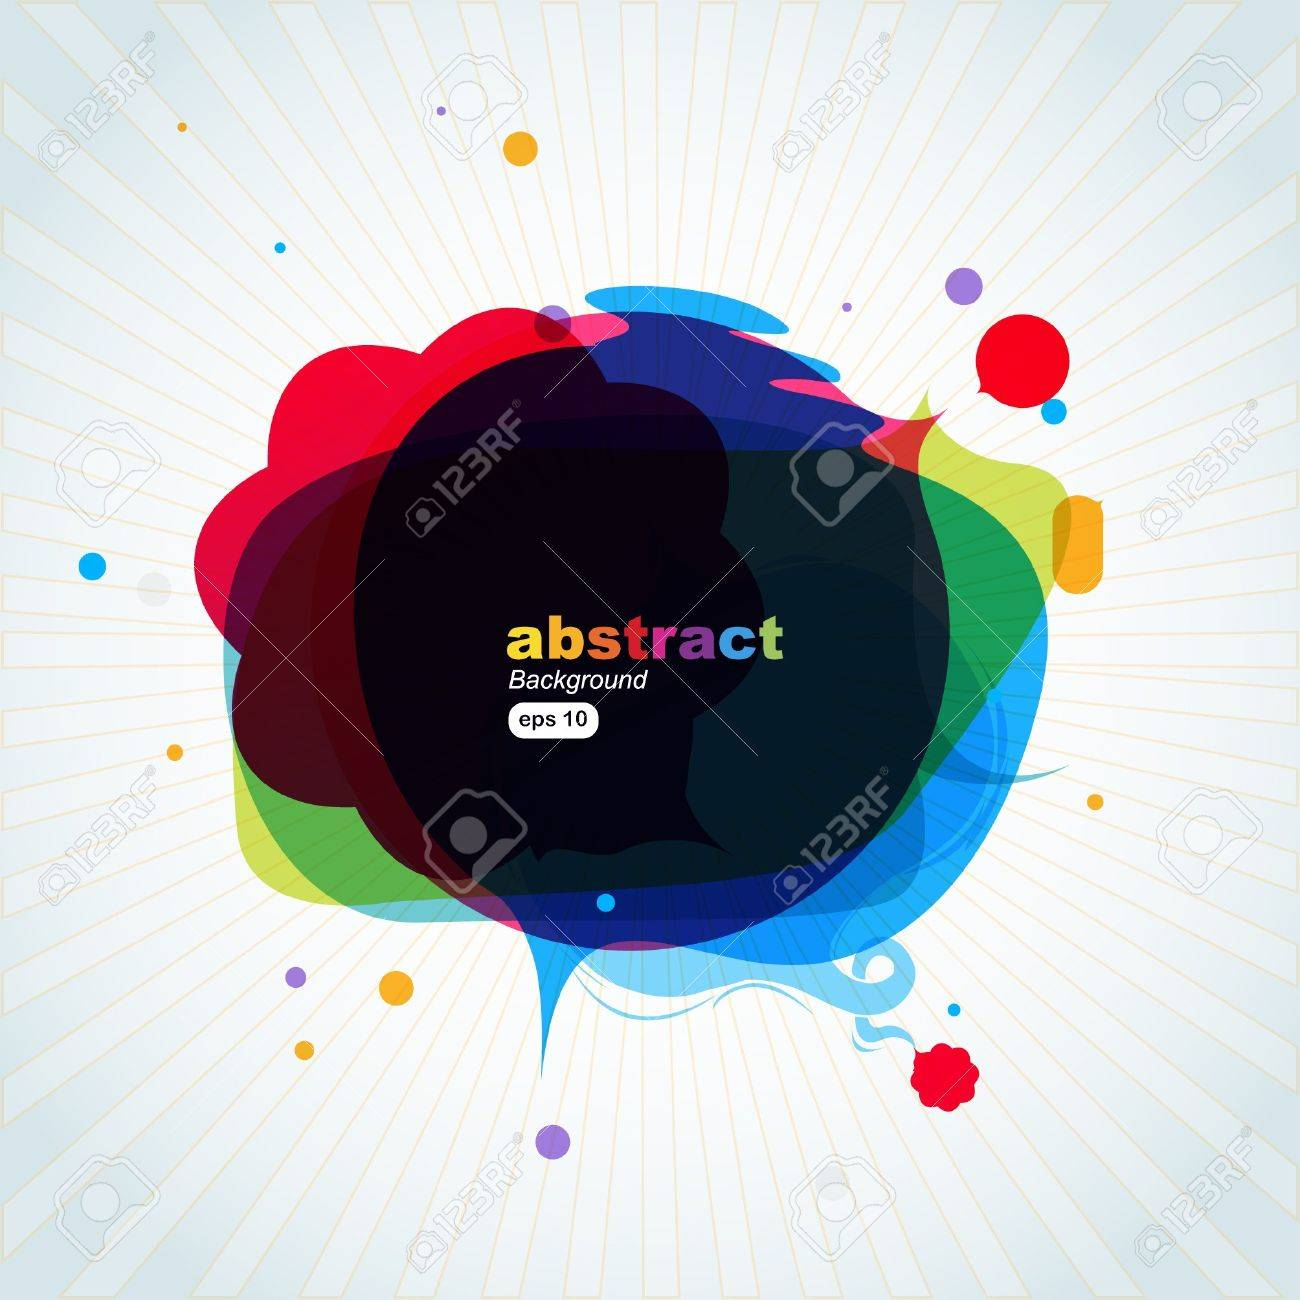 Dialog clouds. illustration Stock Vector - 7904707